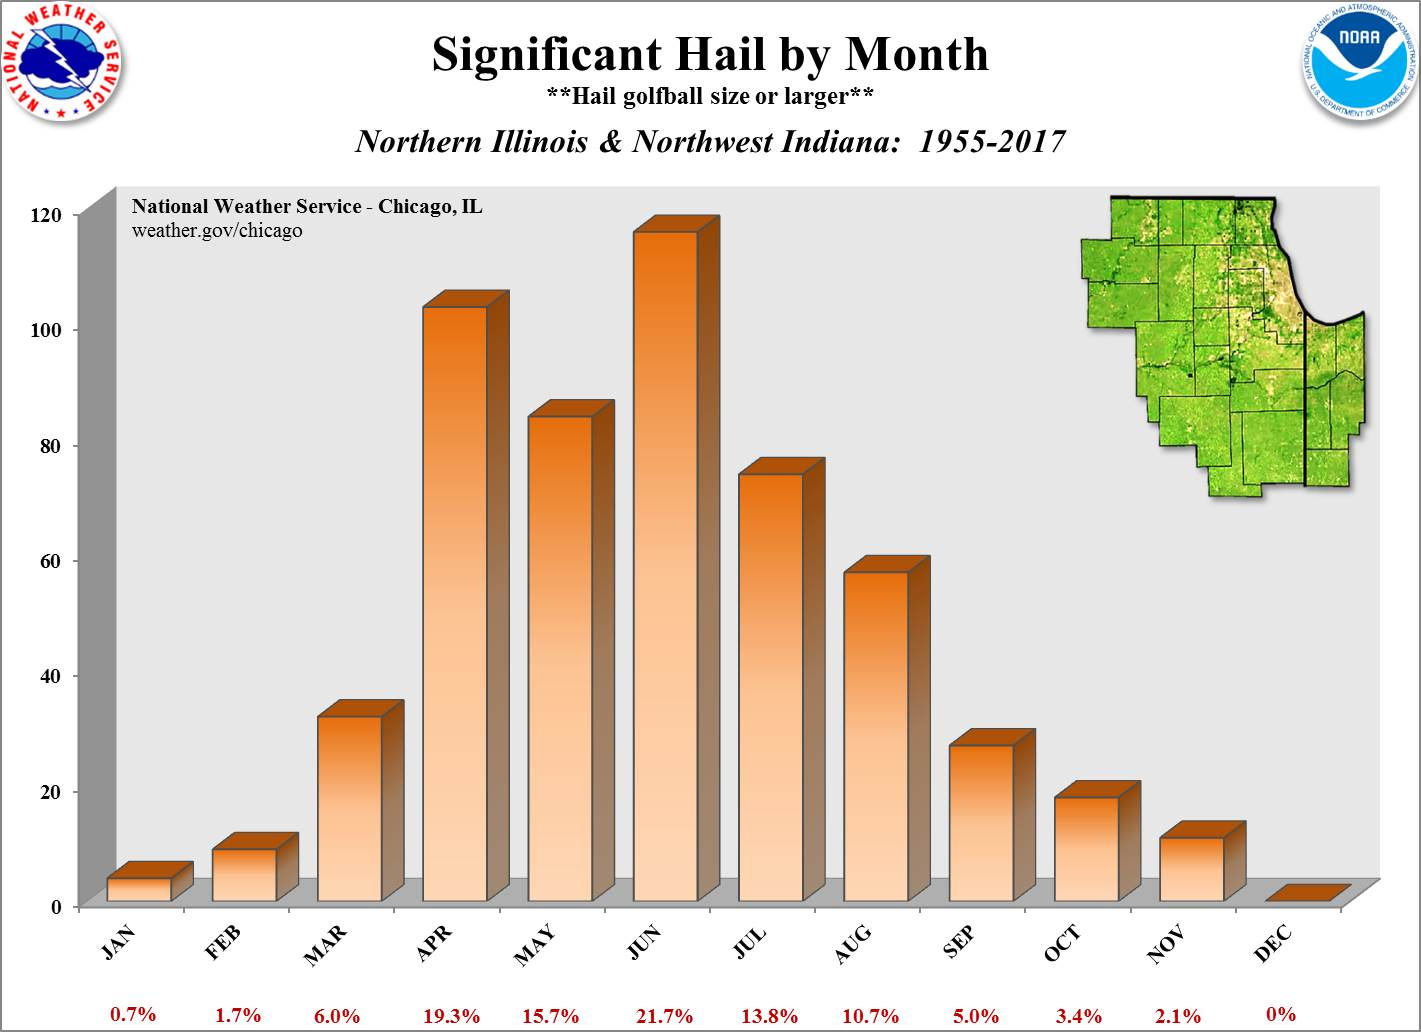 Significant Hail by Time of Year